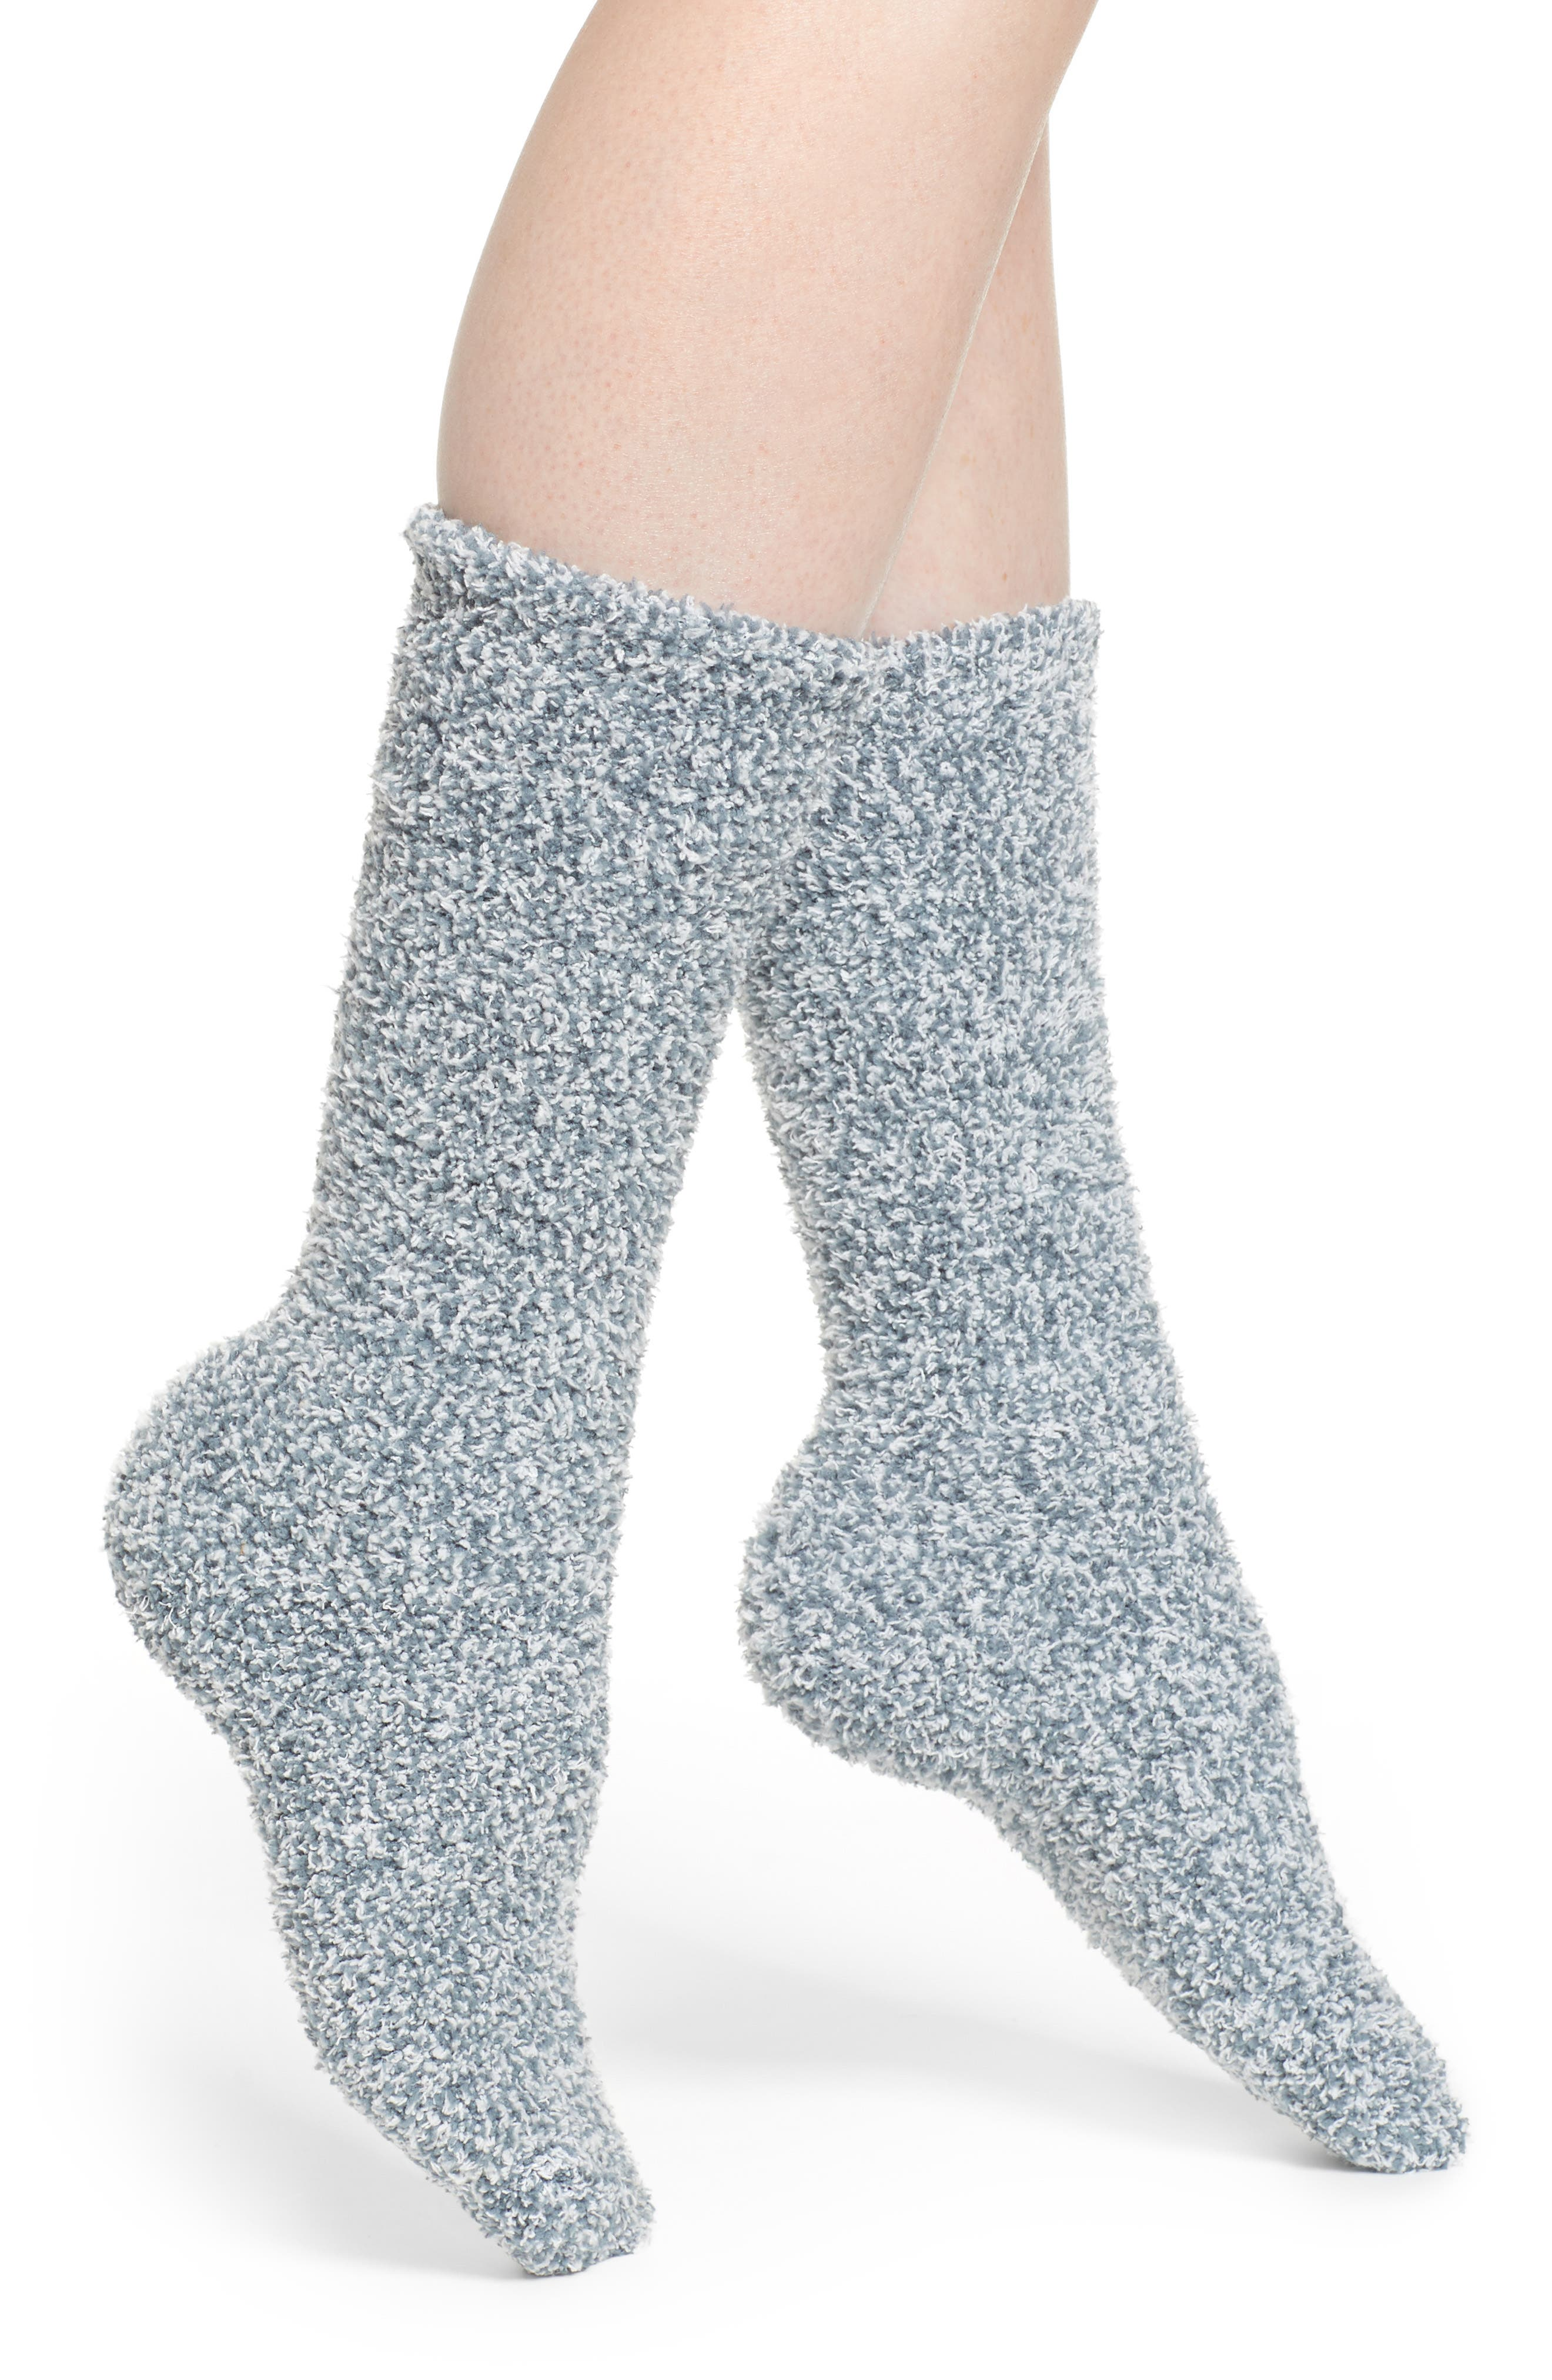 CozyChic<sup>®</sup> Socks,                             Main thumbnail 1, color,                             HEATHER DUSK/ WHITE